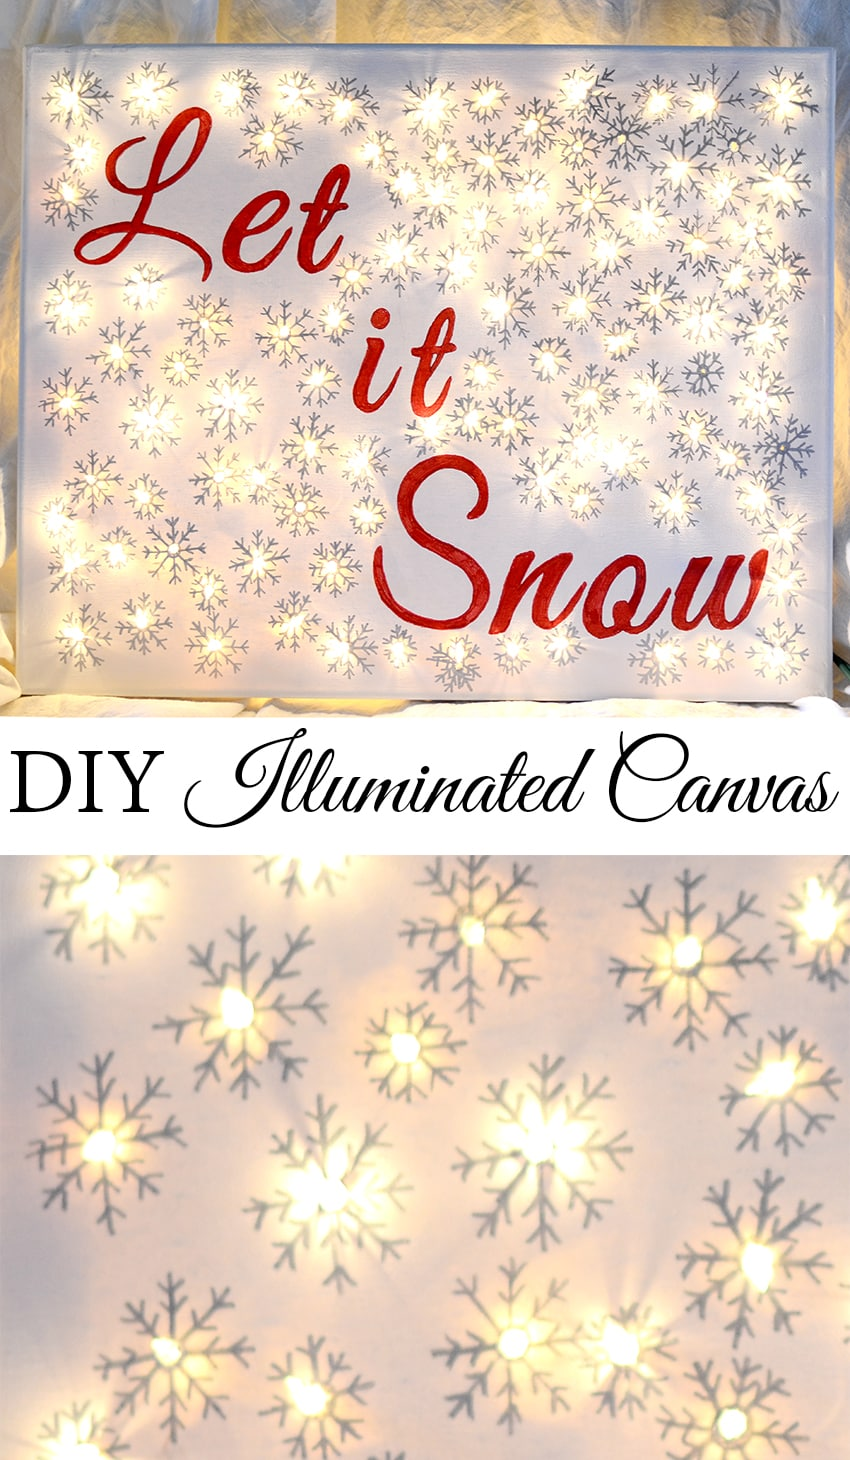 DIY Lighted Christmas Canvas using Sharpies and Mini Lights,,, so easy!